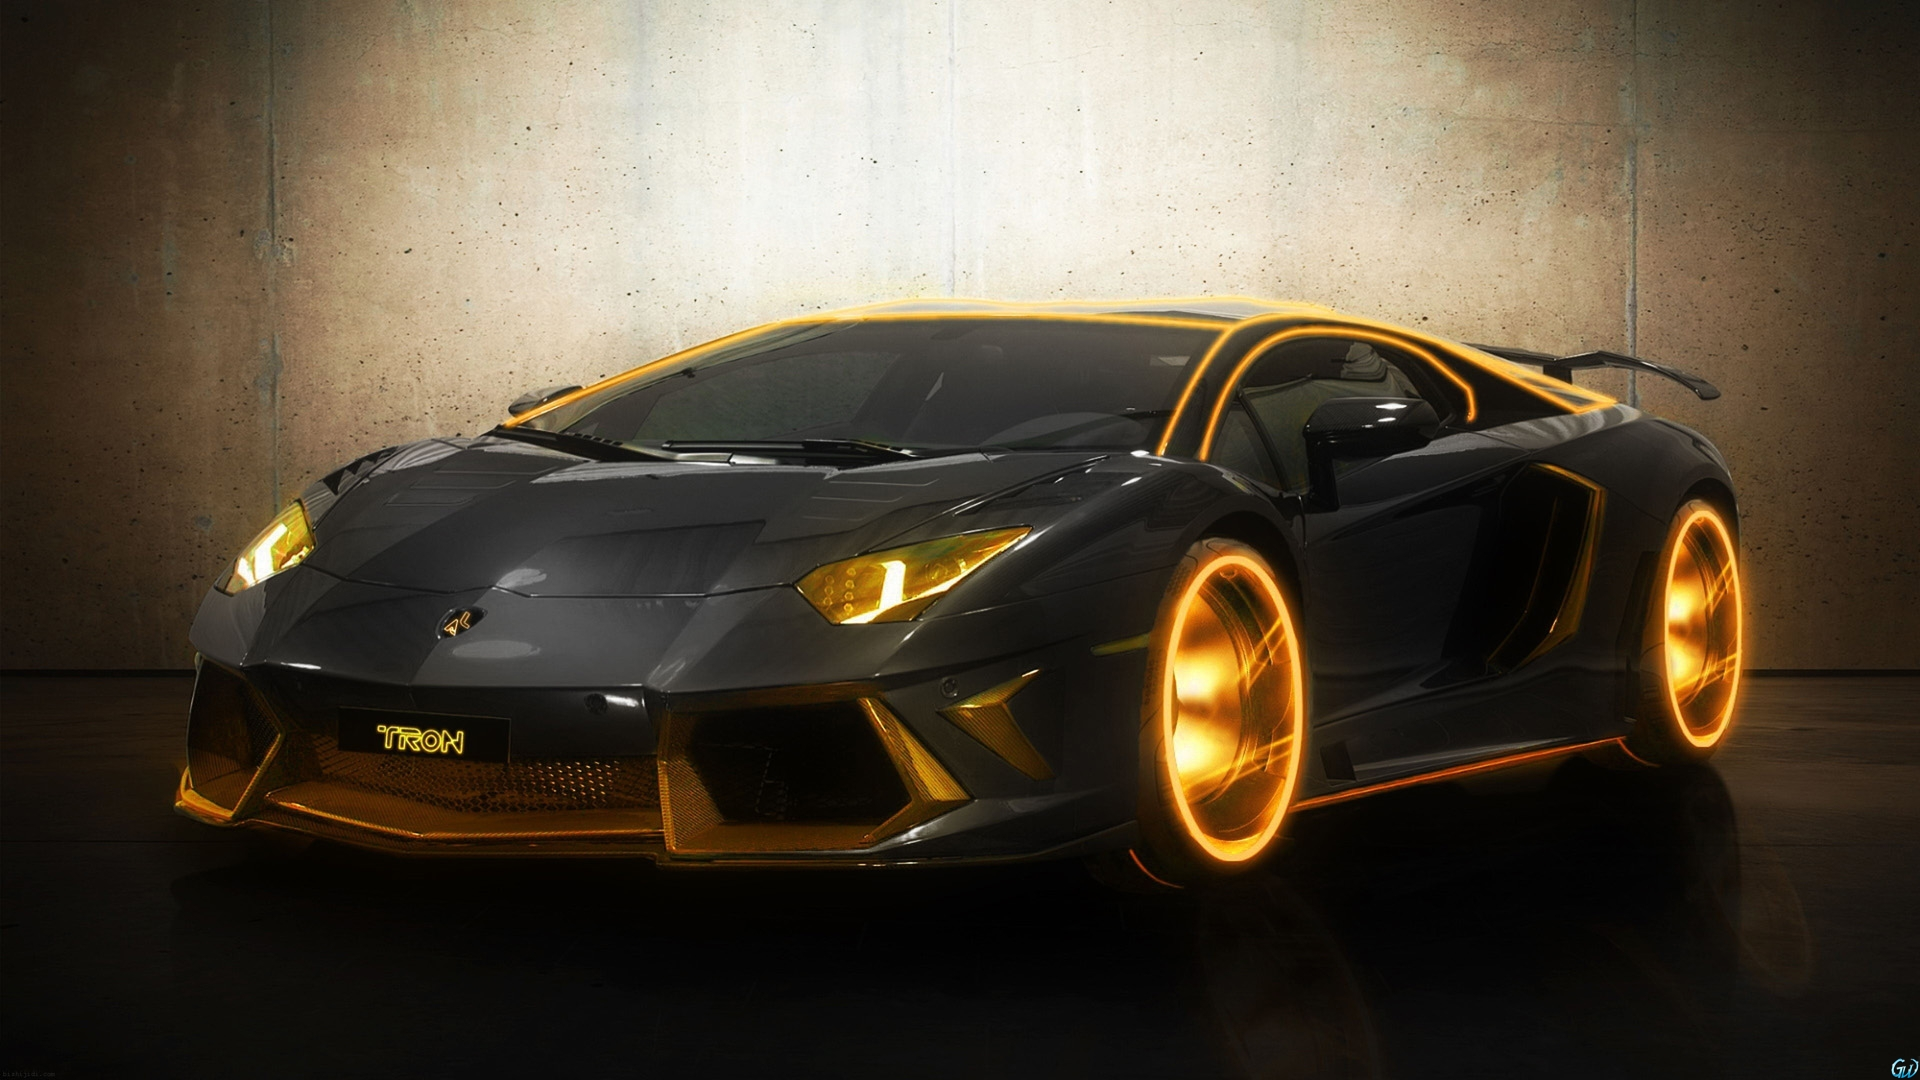 Most Expensive Car In The World >> lamborghini Aventador-Most Expensive